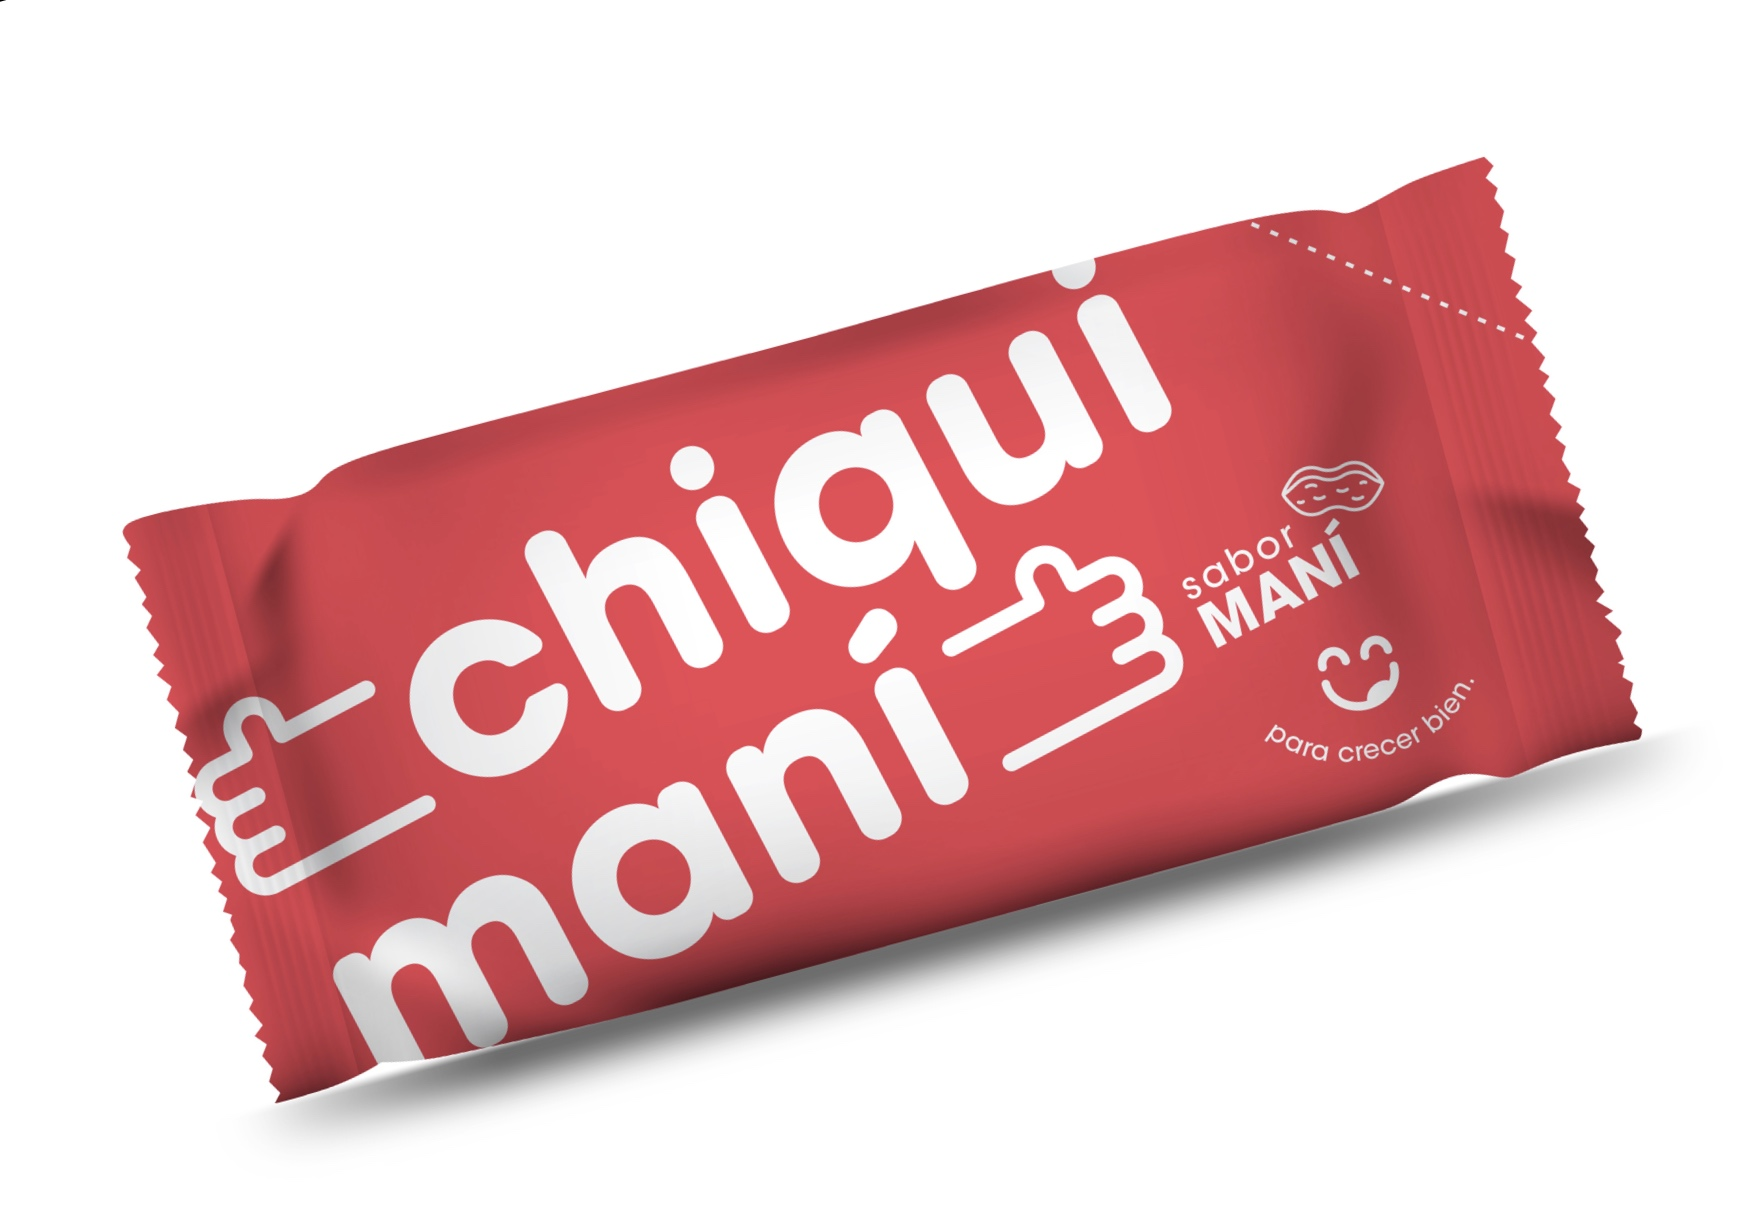 Our 2nd innovation - Chiquimaní (span. baby peanut) combines everything that we learned from Maní+ in a new RUSF. Together with the Institute for Nutrition of Central America and Panama (INCAP), we have updated the micronutrient formula to maximize impact, and with caretakers and NGOs alike we have optimized the product to improve taste and consumer experience.Lean more